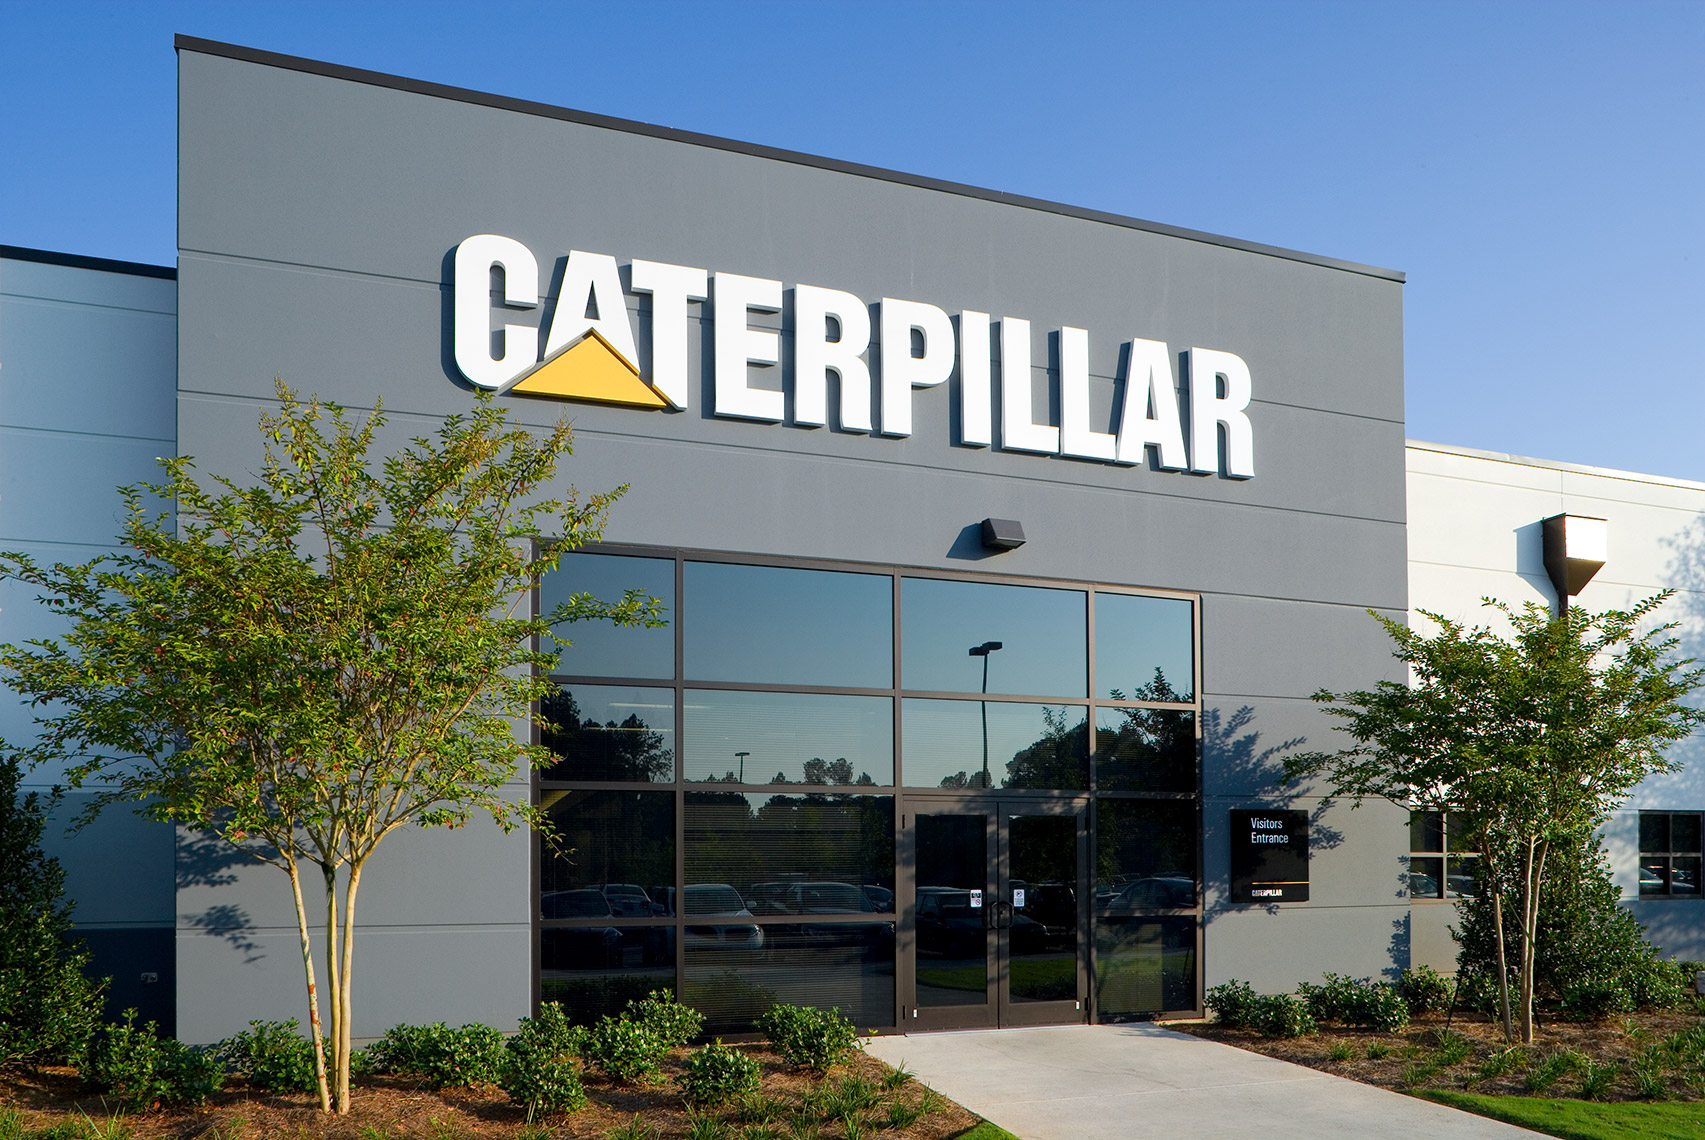 Main entrance and signage at Caterpillar Manufacturing in Athens GA